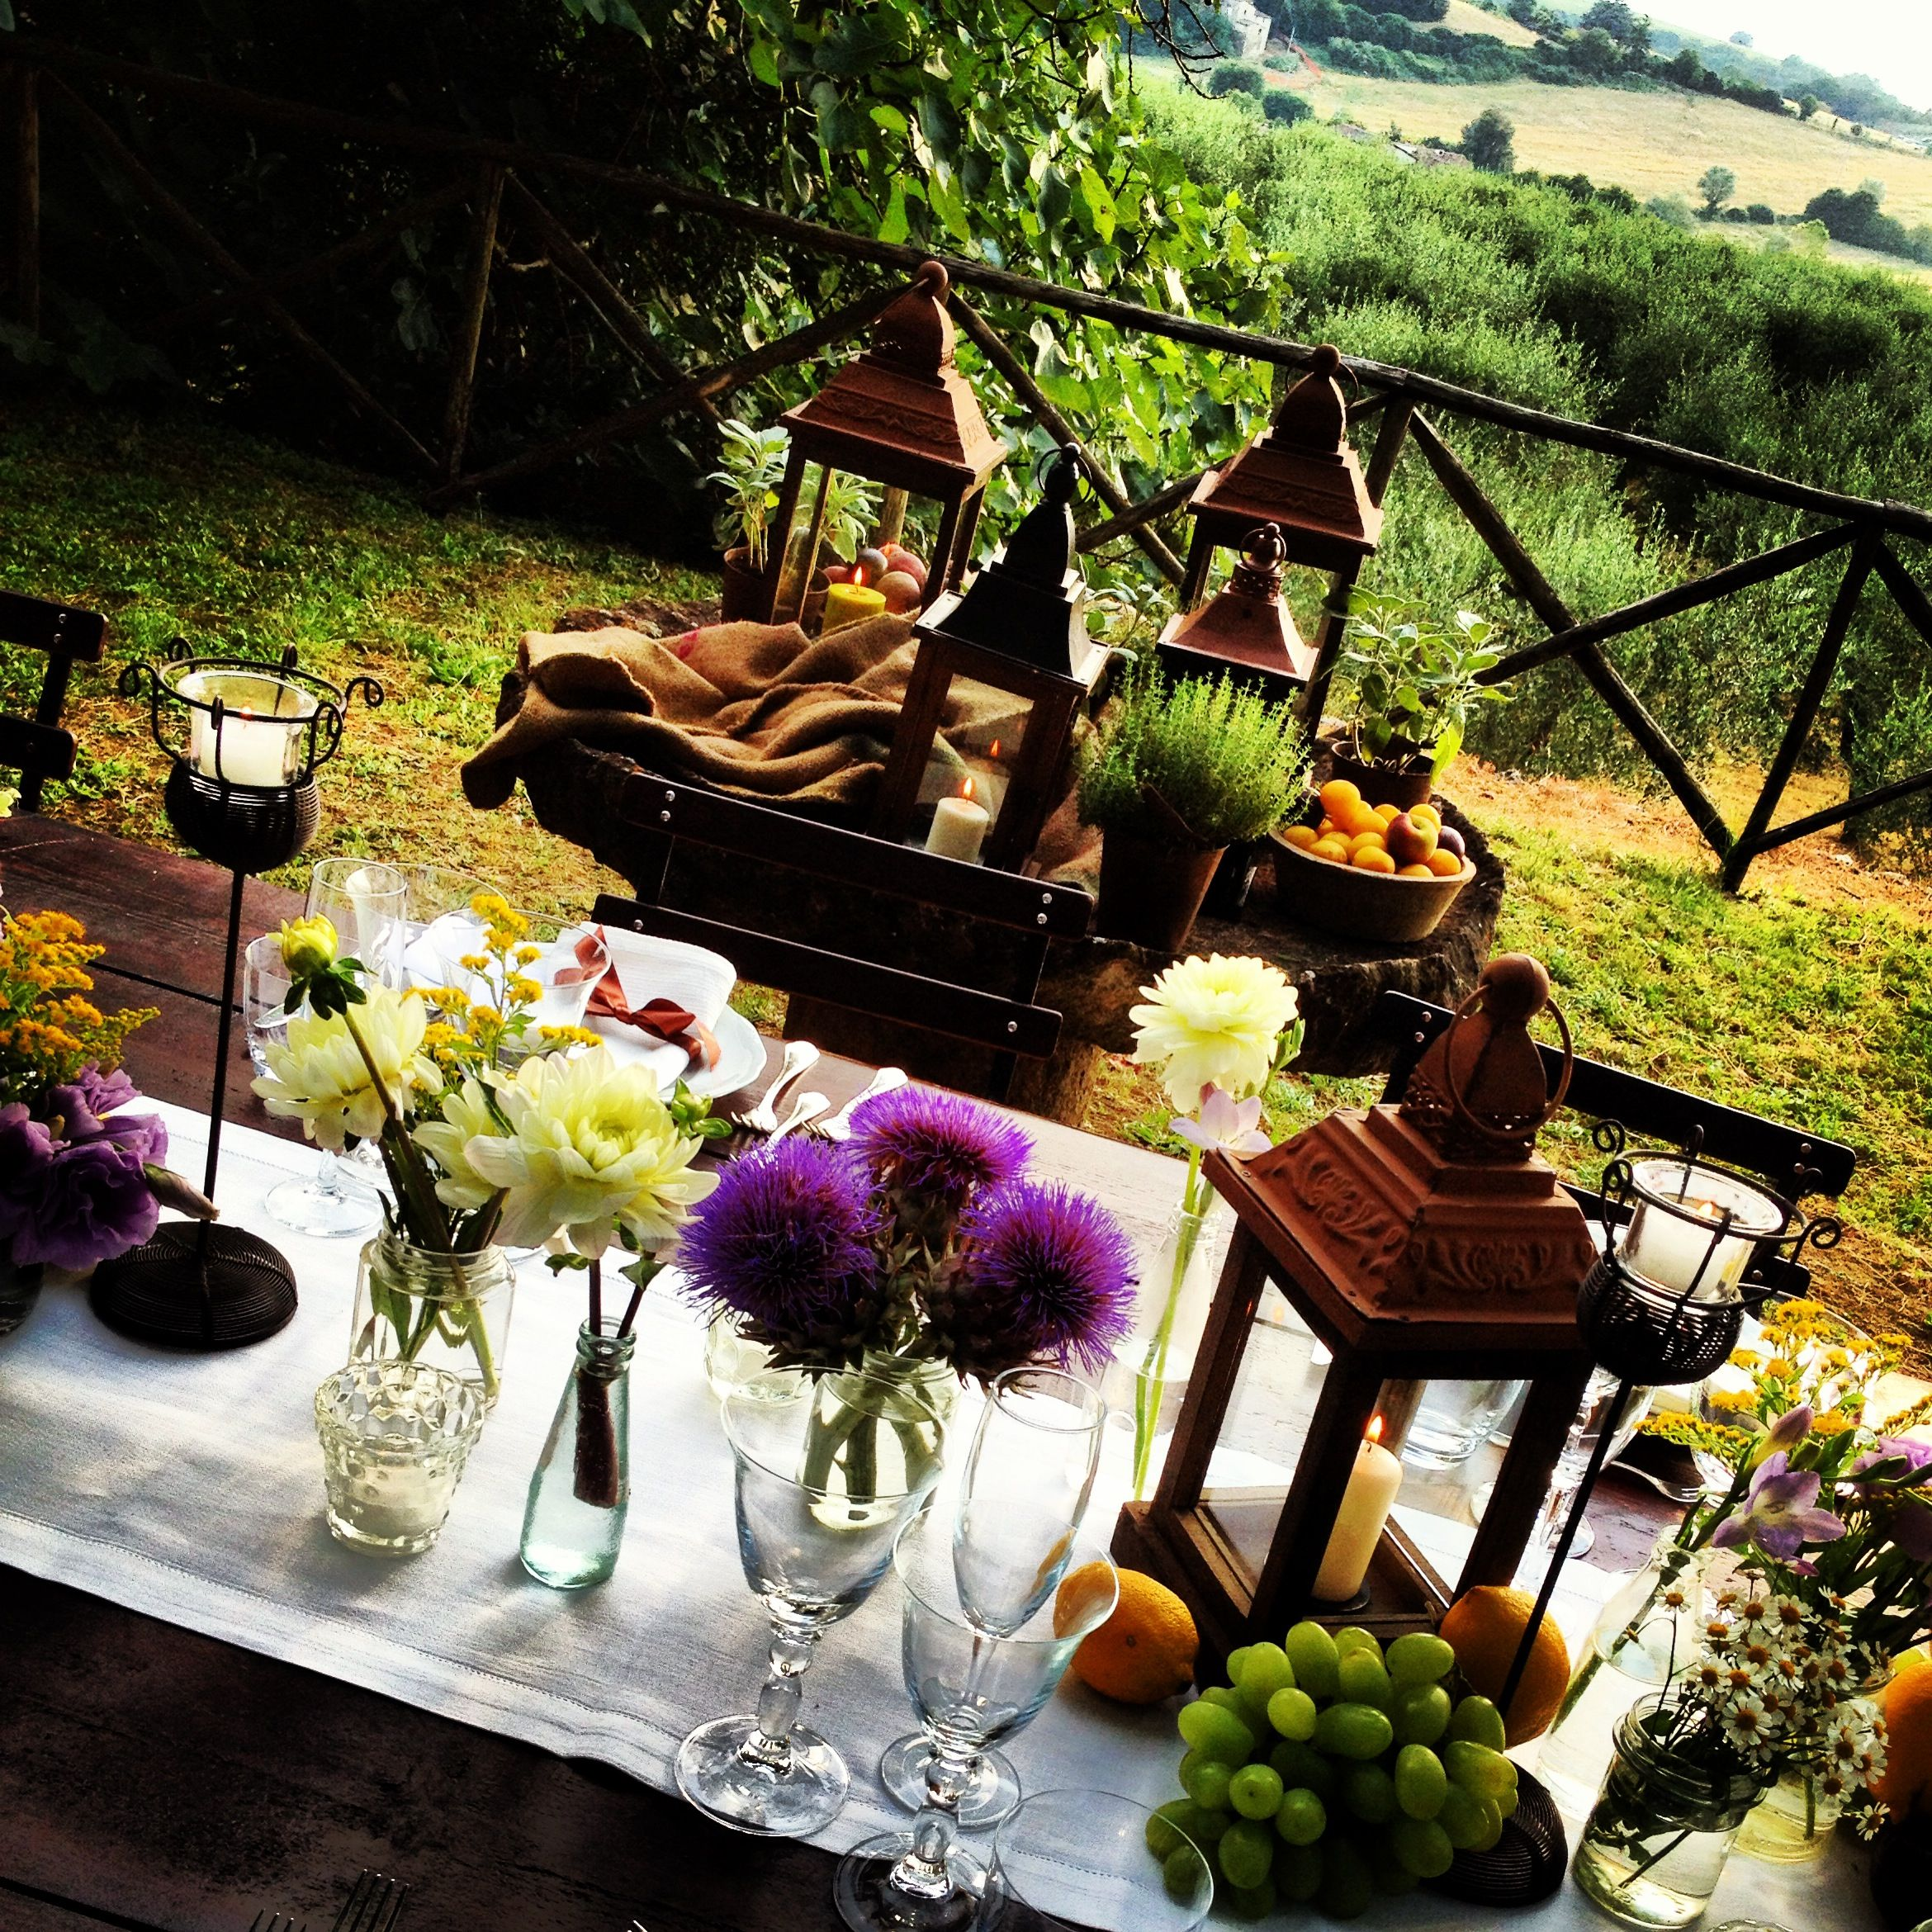 #Tuscany #beauty #outdoordining #wedding #food